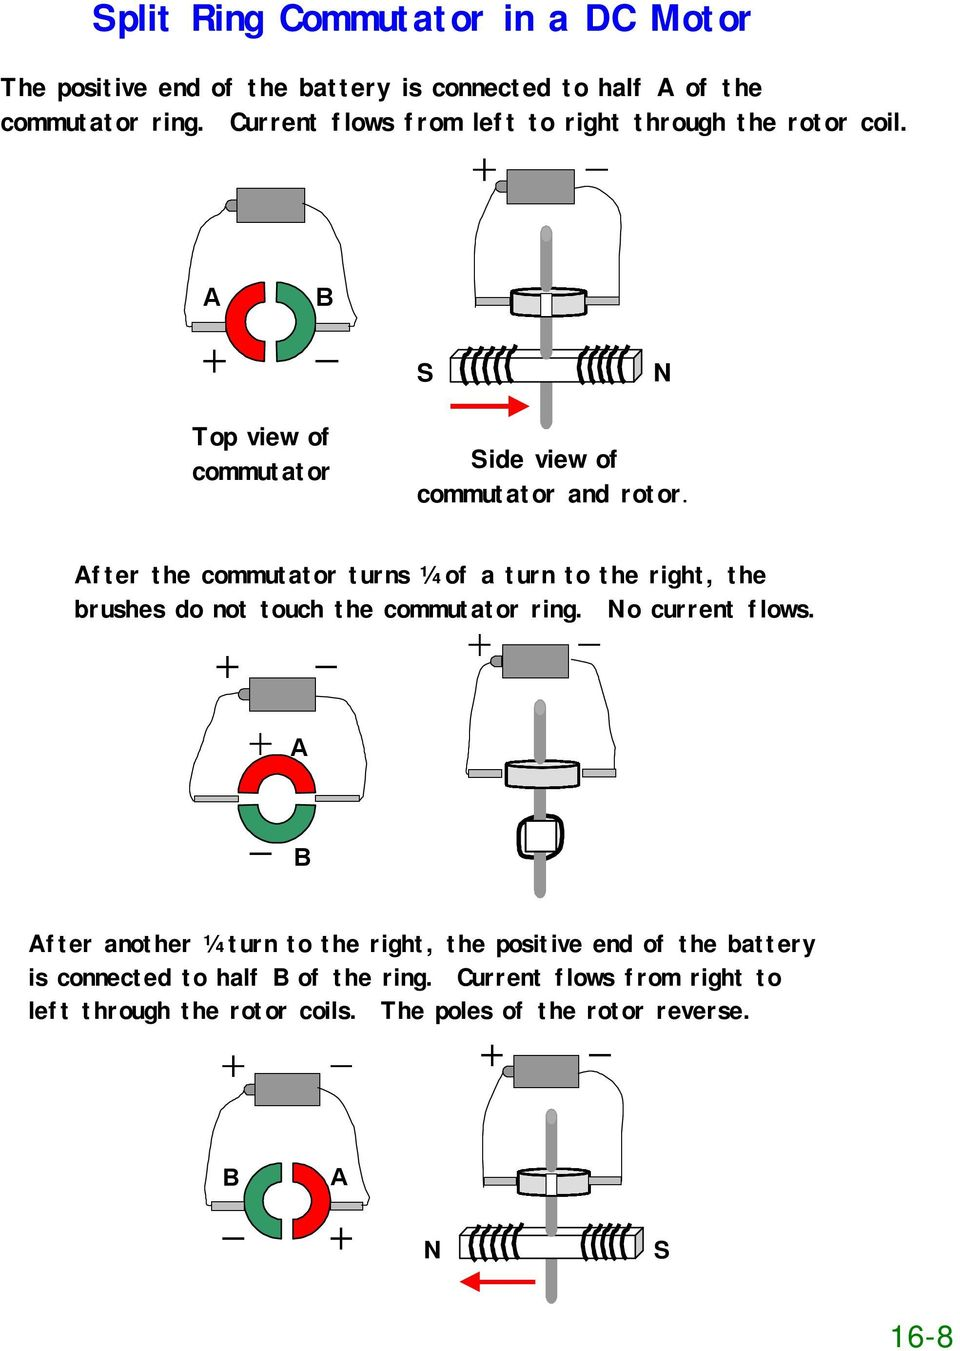 After the commutator turns ¼ of a turn to the right, the brushes do not touch the commutator ring. No current flows.